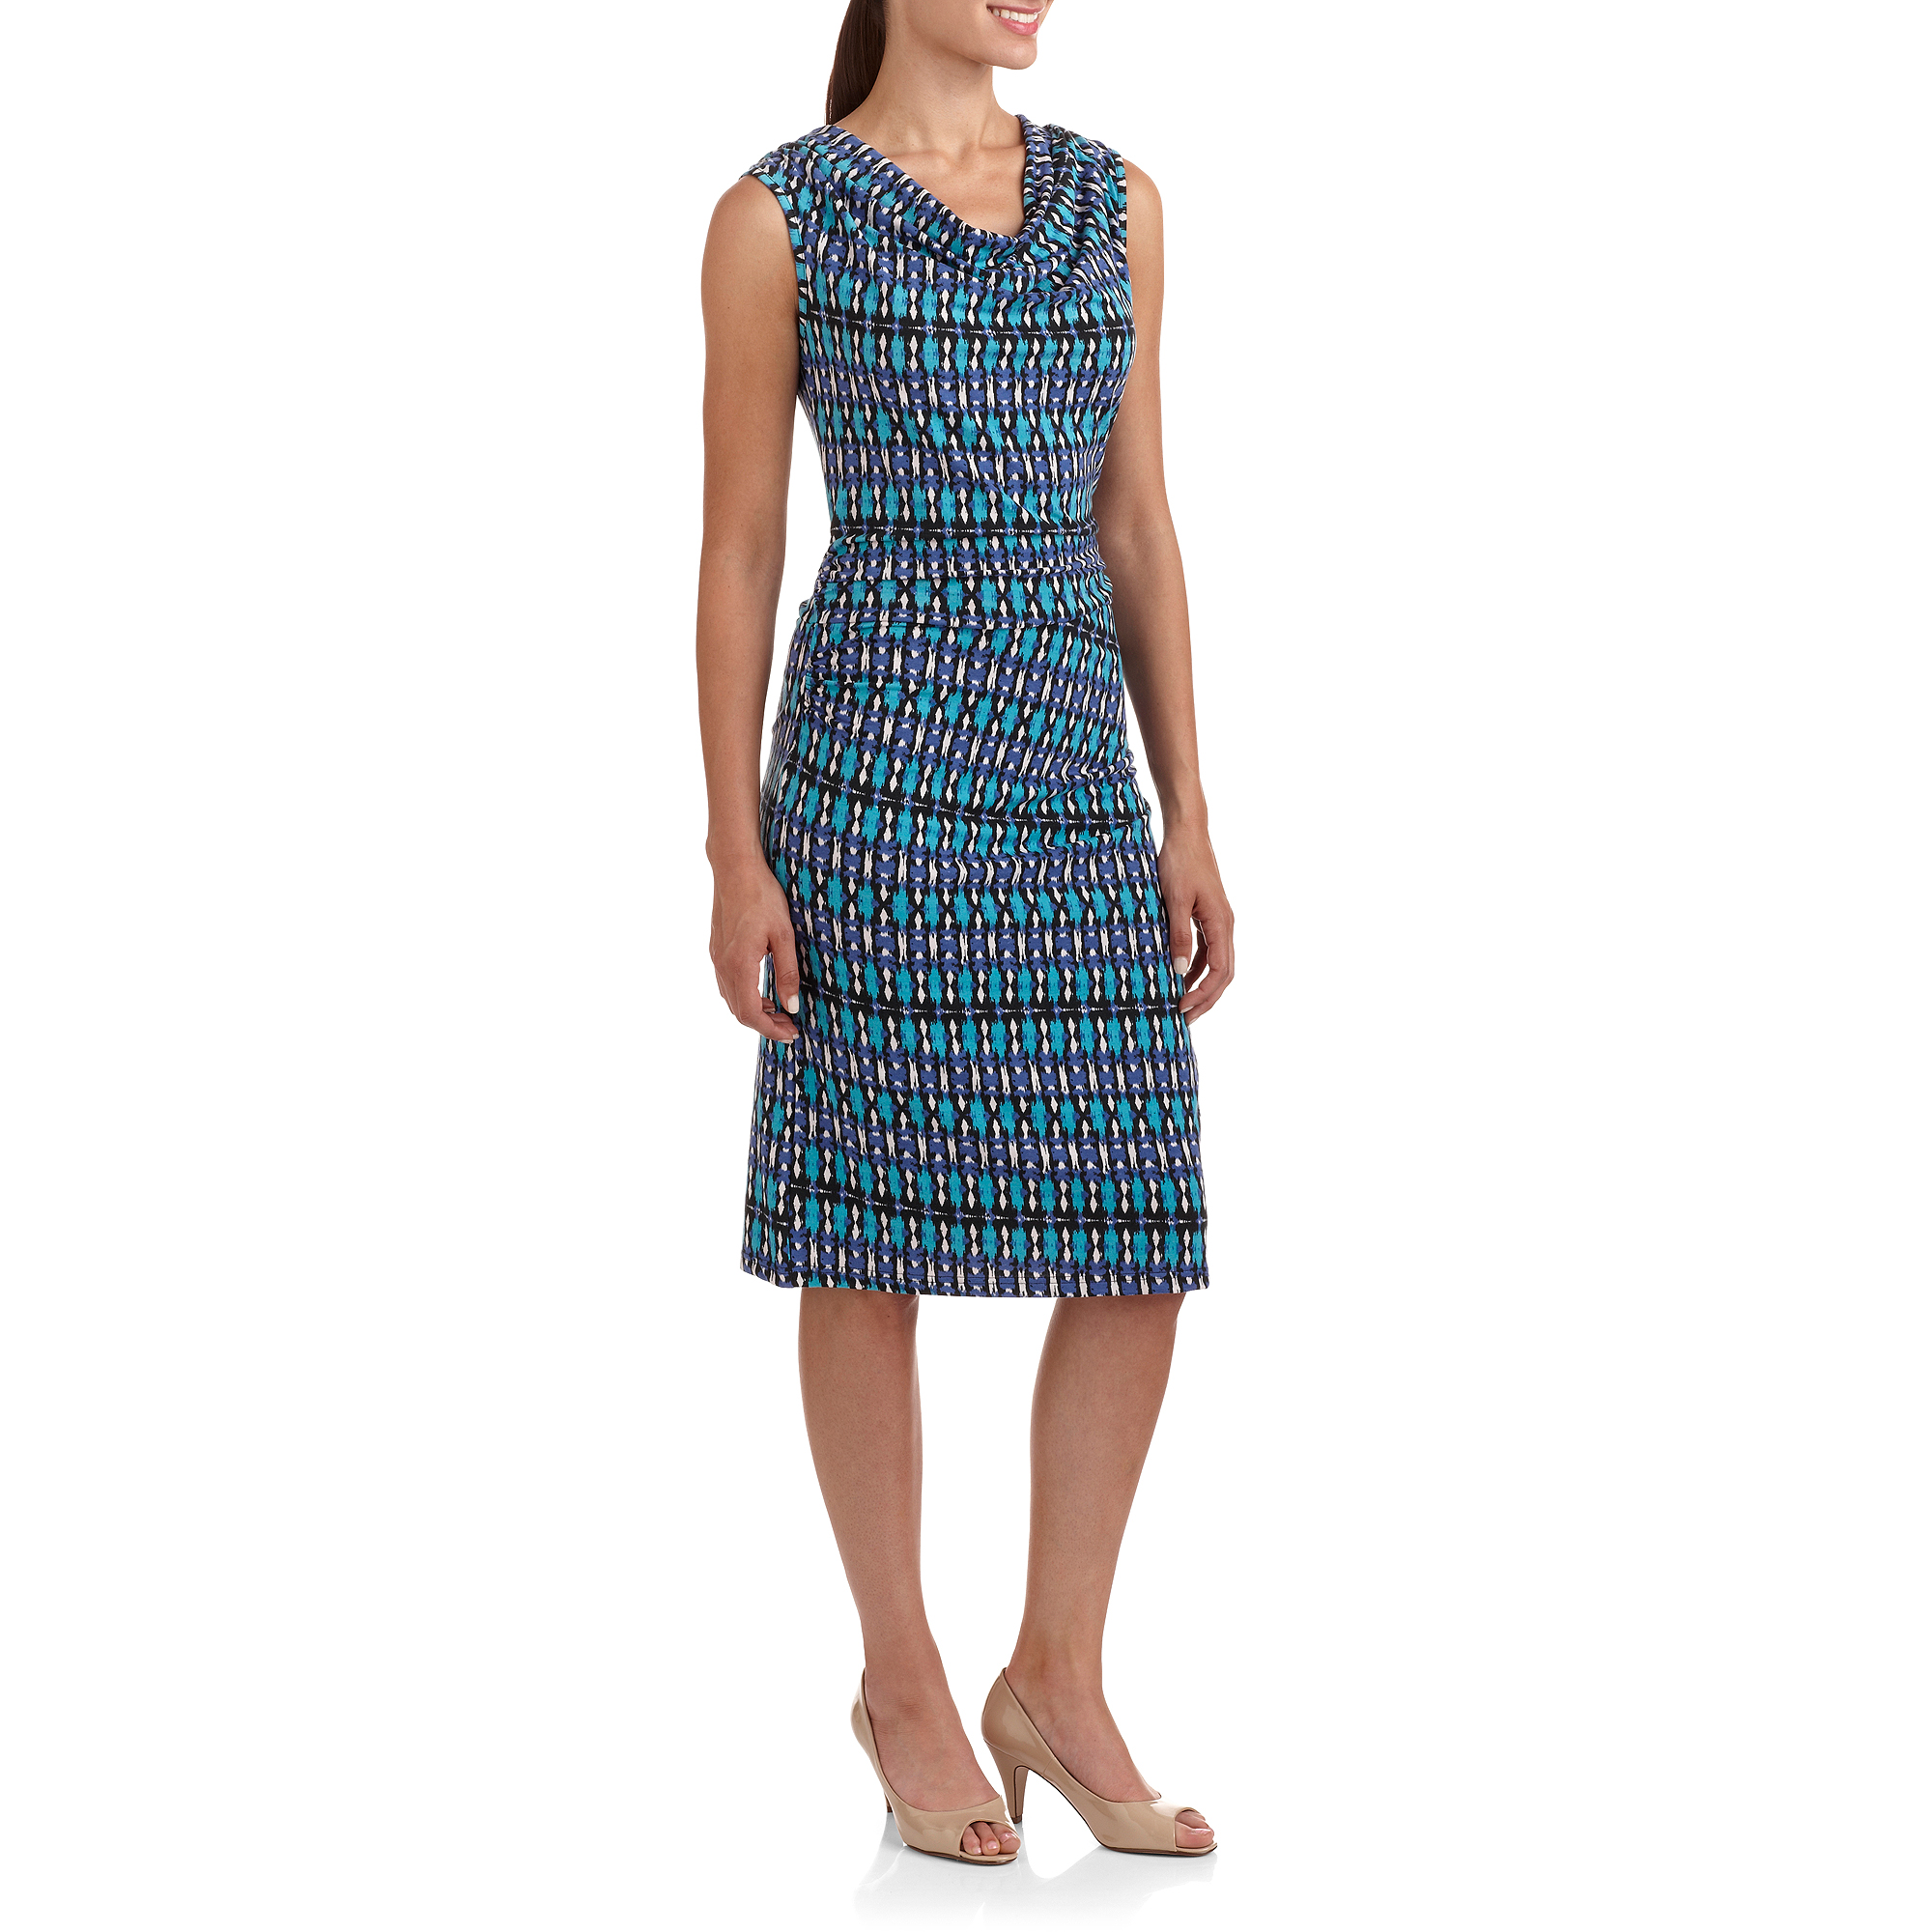 Full Circle Exchange Women's Shirred Drape Dress